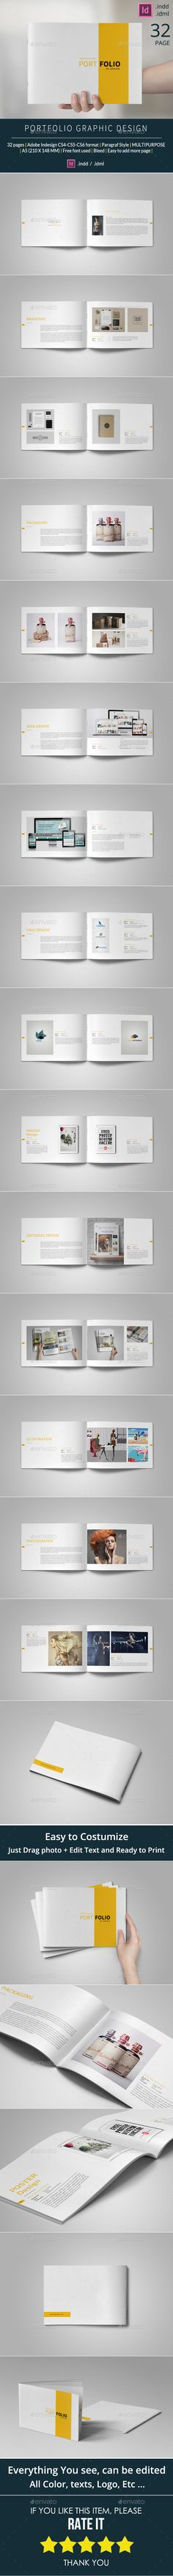 A5 Portfolio Template — InDesign INDD #indesign template #portfolio • Available here → https://graphicriver.net/item/a5-portfolio-template/10509226?ref=pxcr